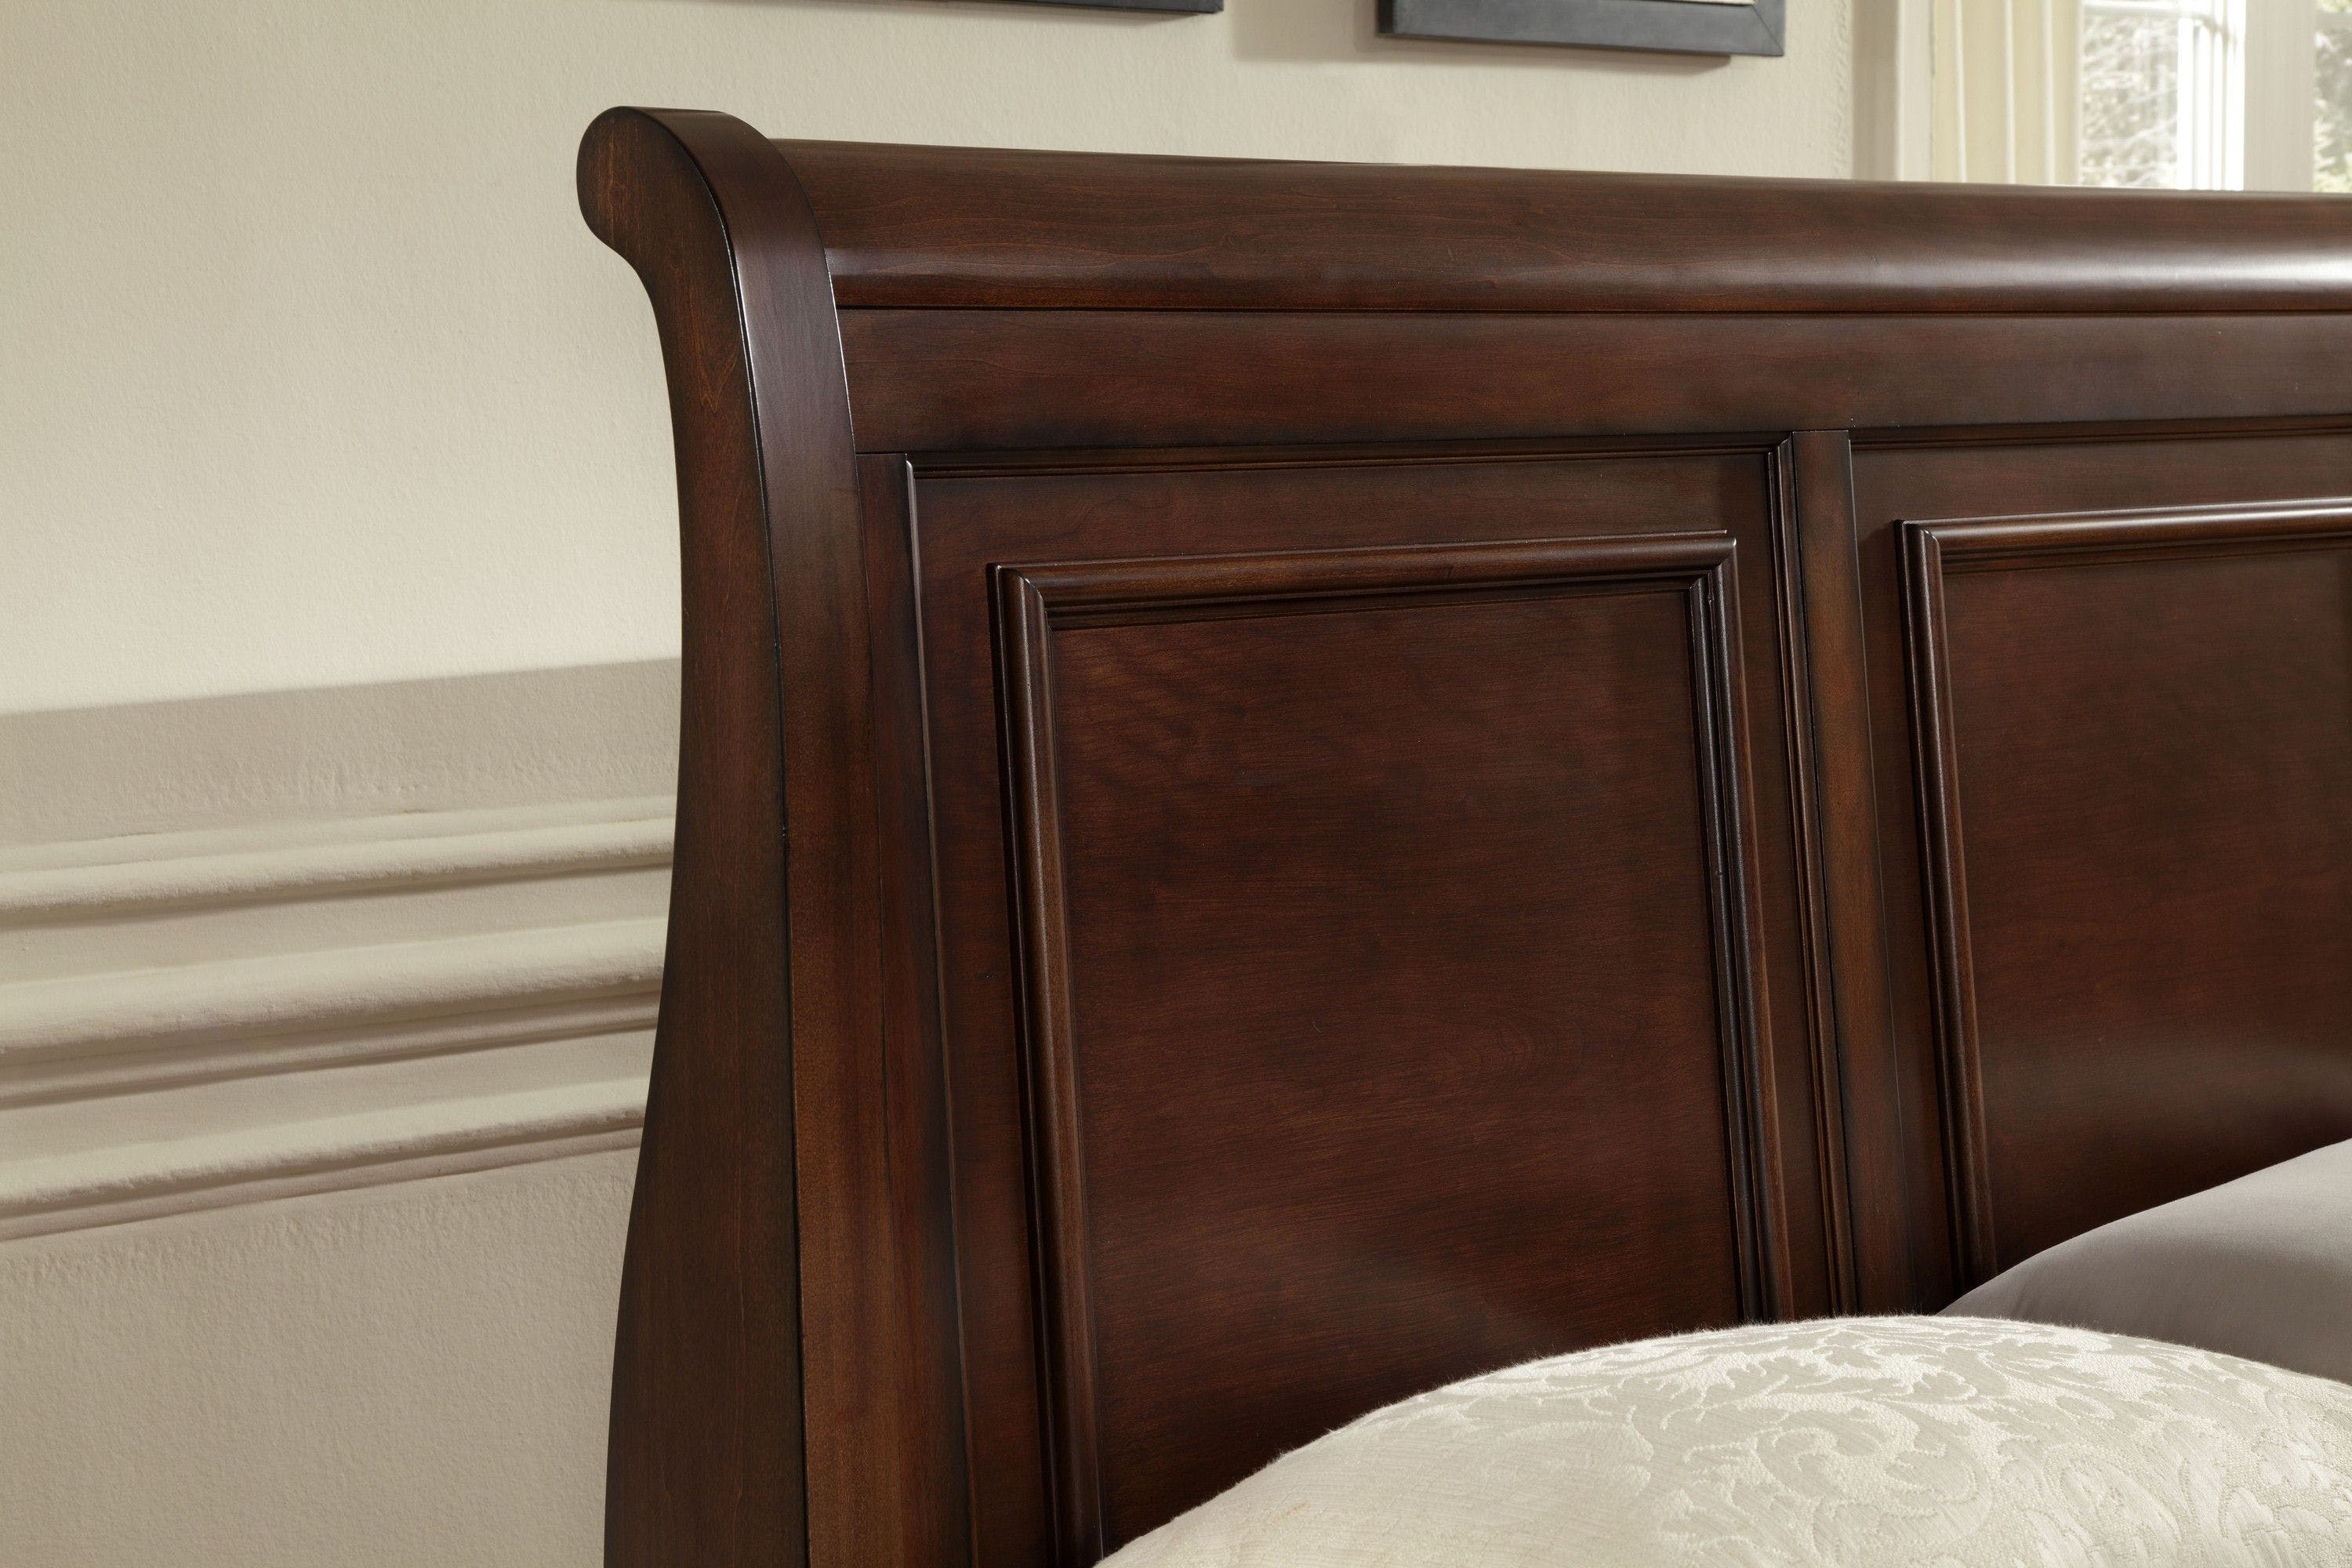 Vaughan Bassett Furniture Company Bedroom Queen Sleigh Bed 530 553 355 722 Fords Furniture